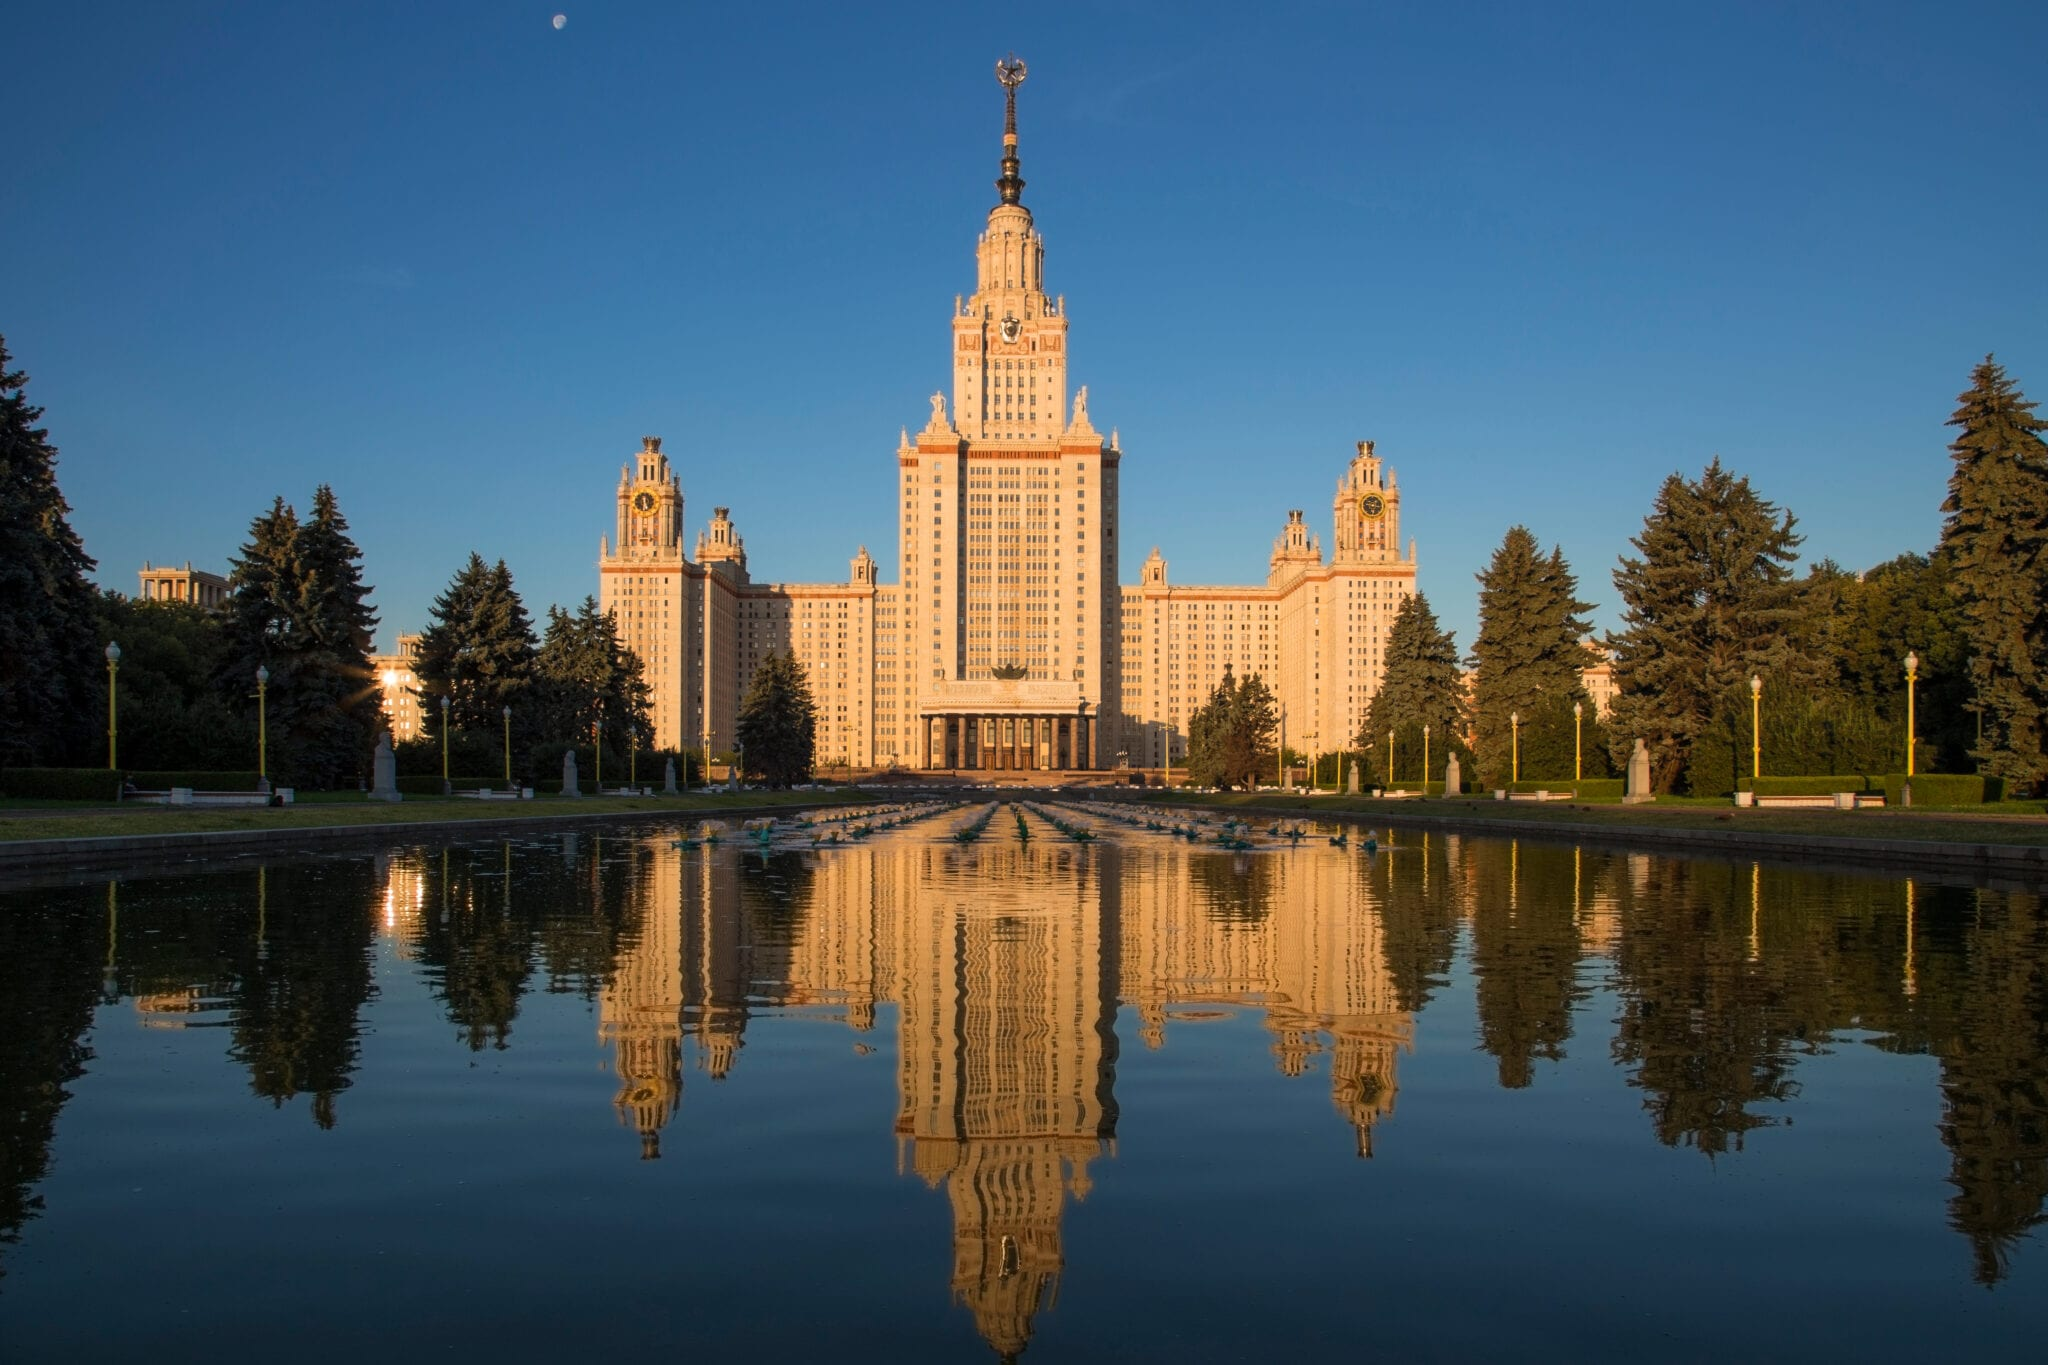 Moscow State University's main skyscraper building reflected